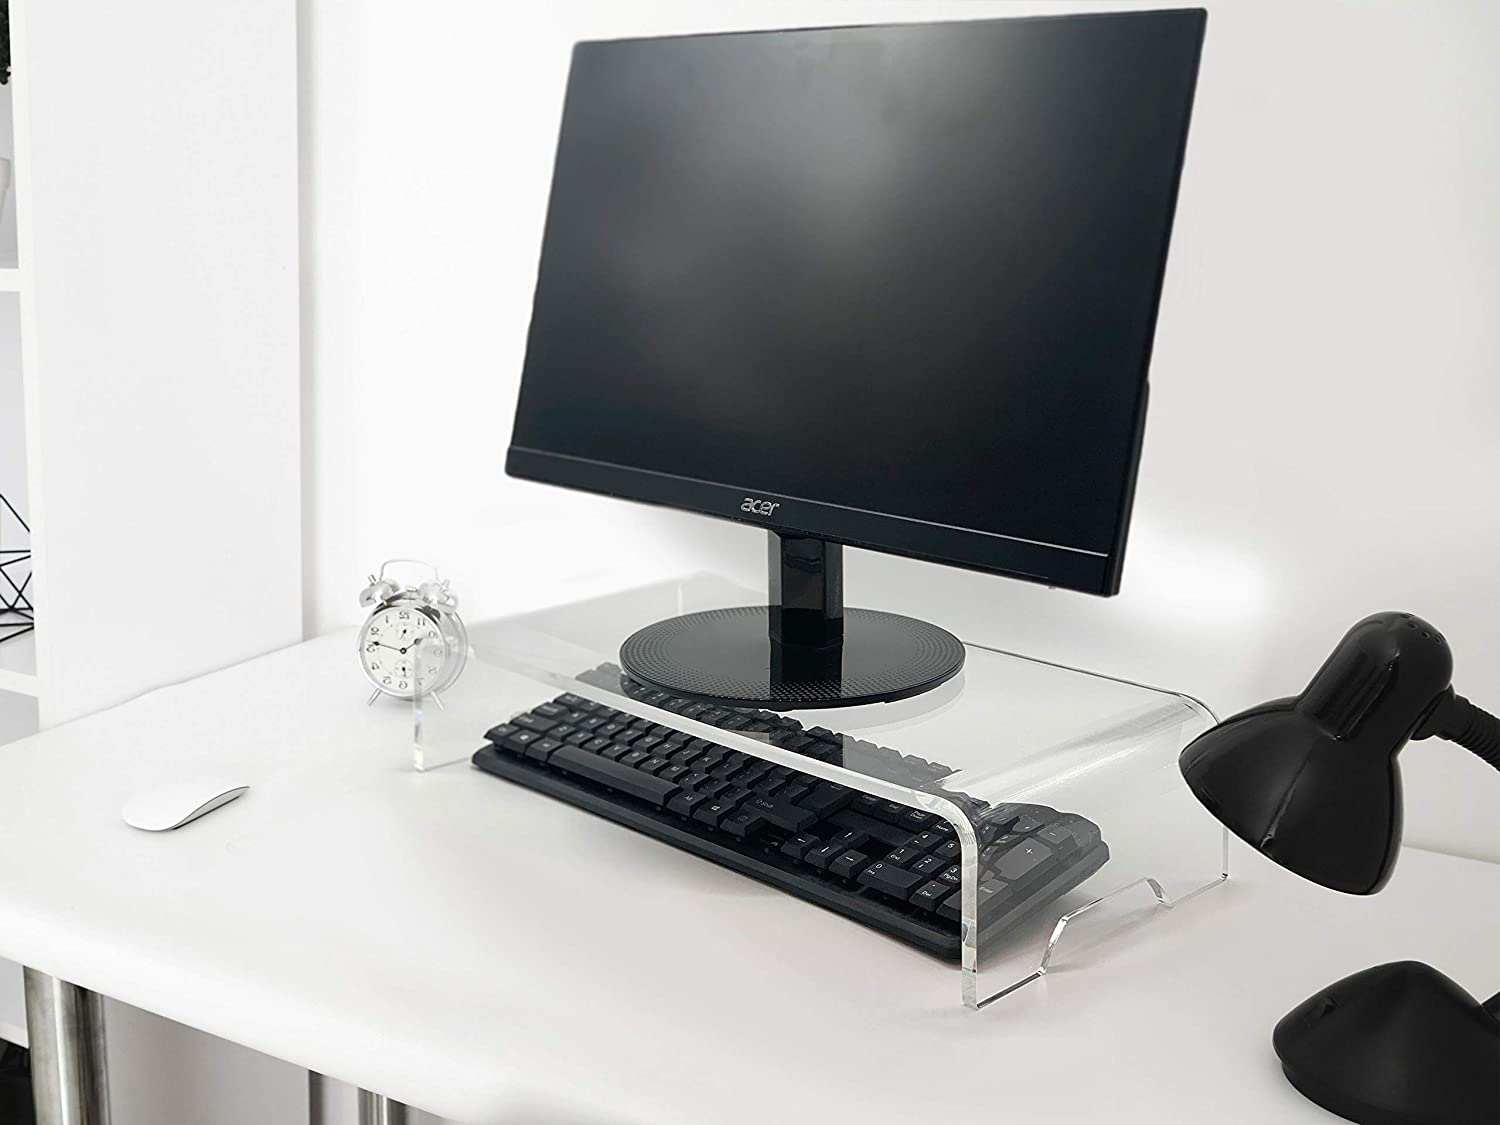 Made in The USA Laptop Riser for Zoom Conference Calls Clear Computer Stand, Acrylic Computer Monitor Riser, Holds up to 40lbs Desktop Monitor Stand, 12MM Thickness Computer Stand for Home Office